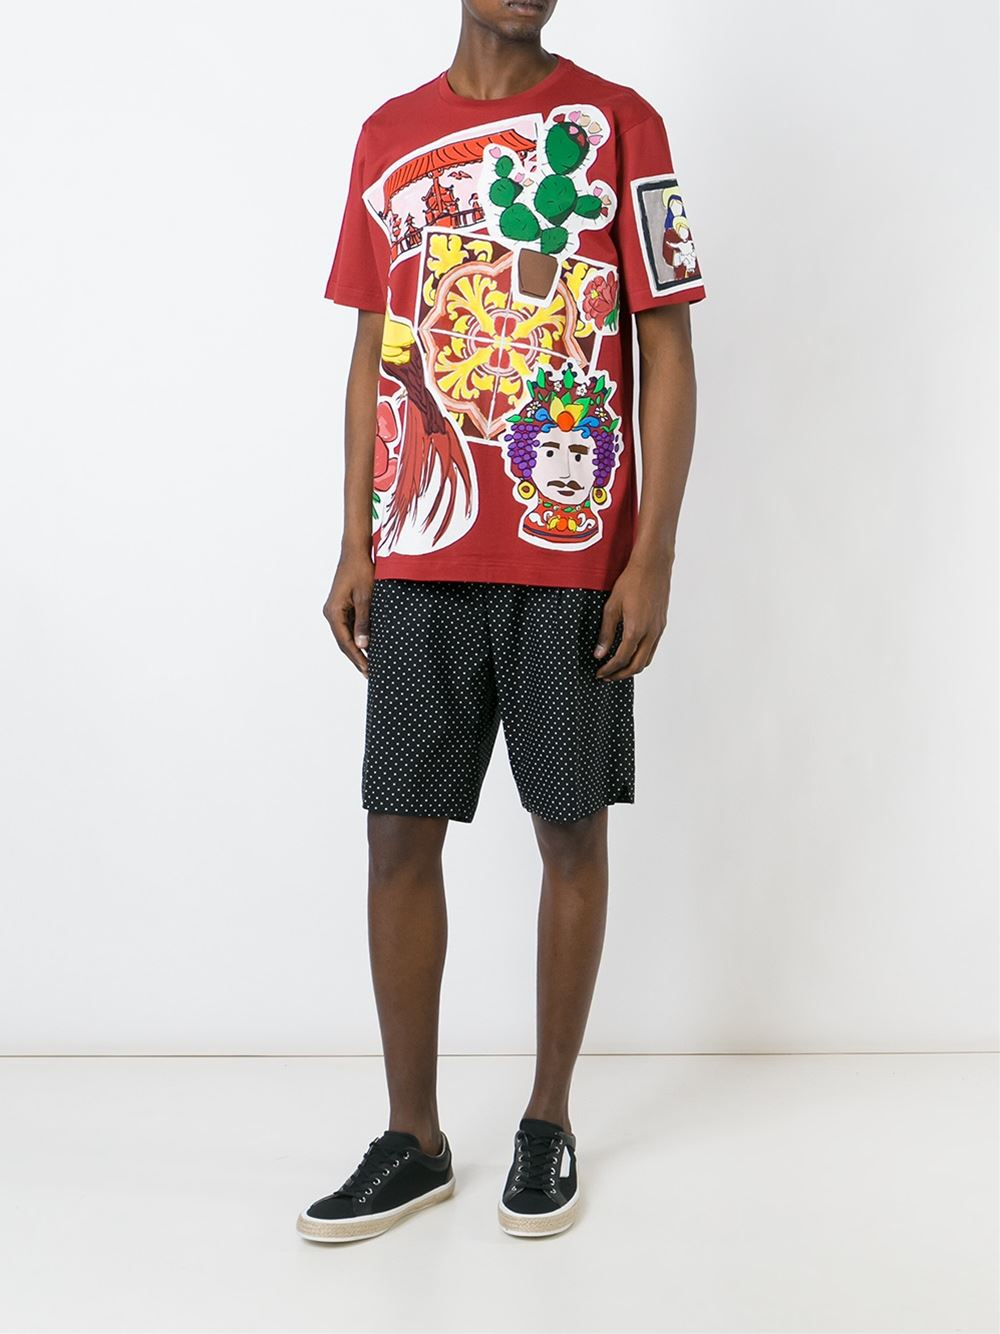 Dolce gabbana printed t shirt in red for men lyst for Dolce and gabbana printed t shirts